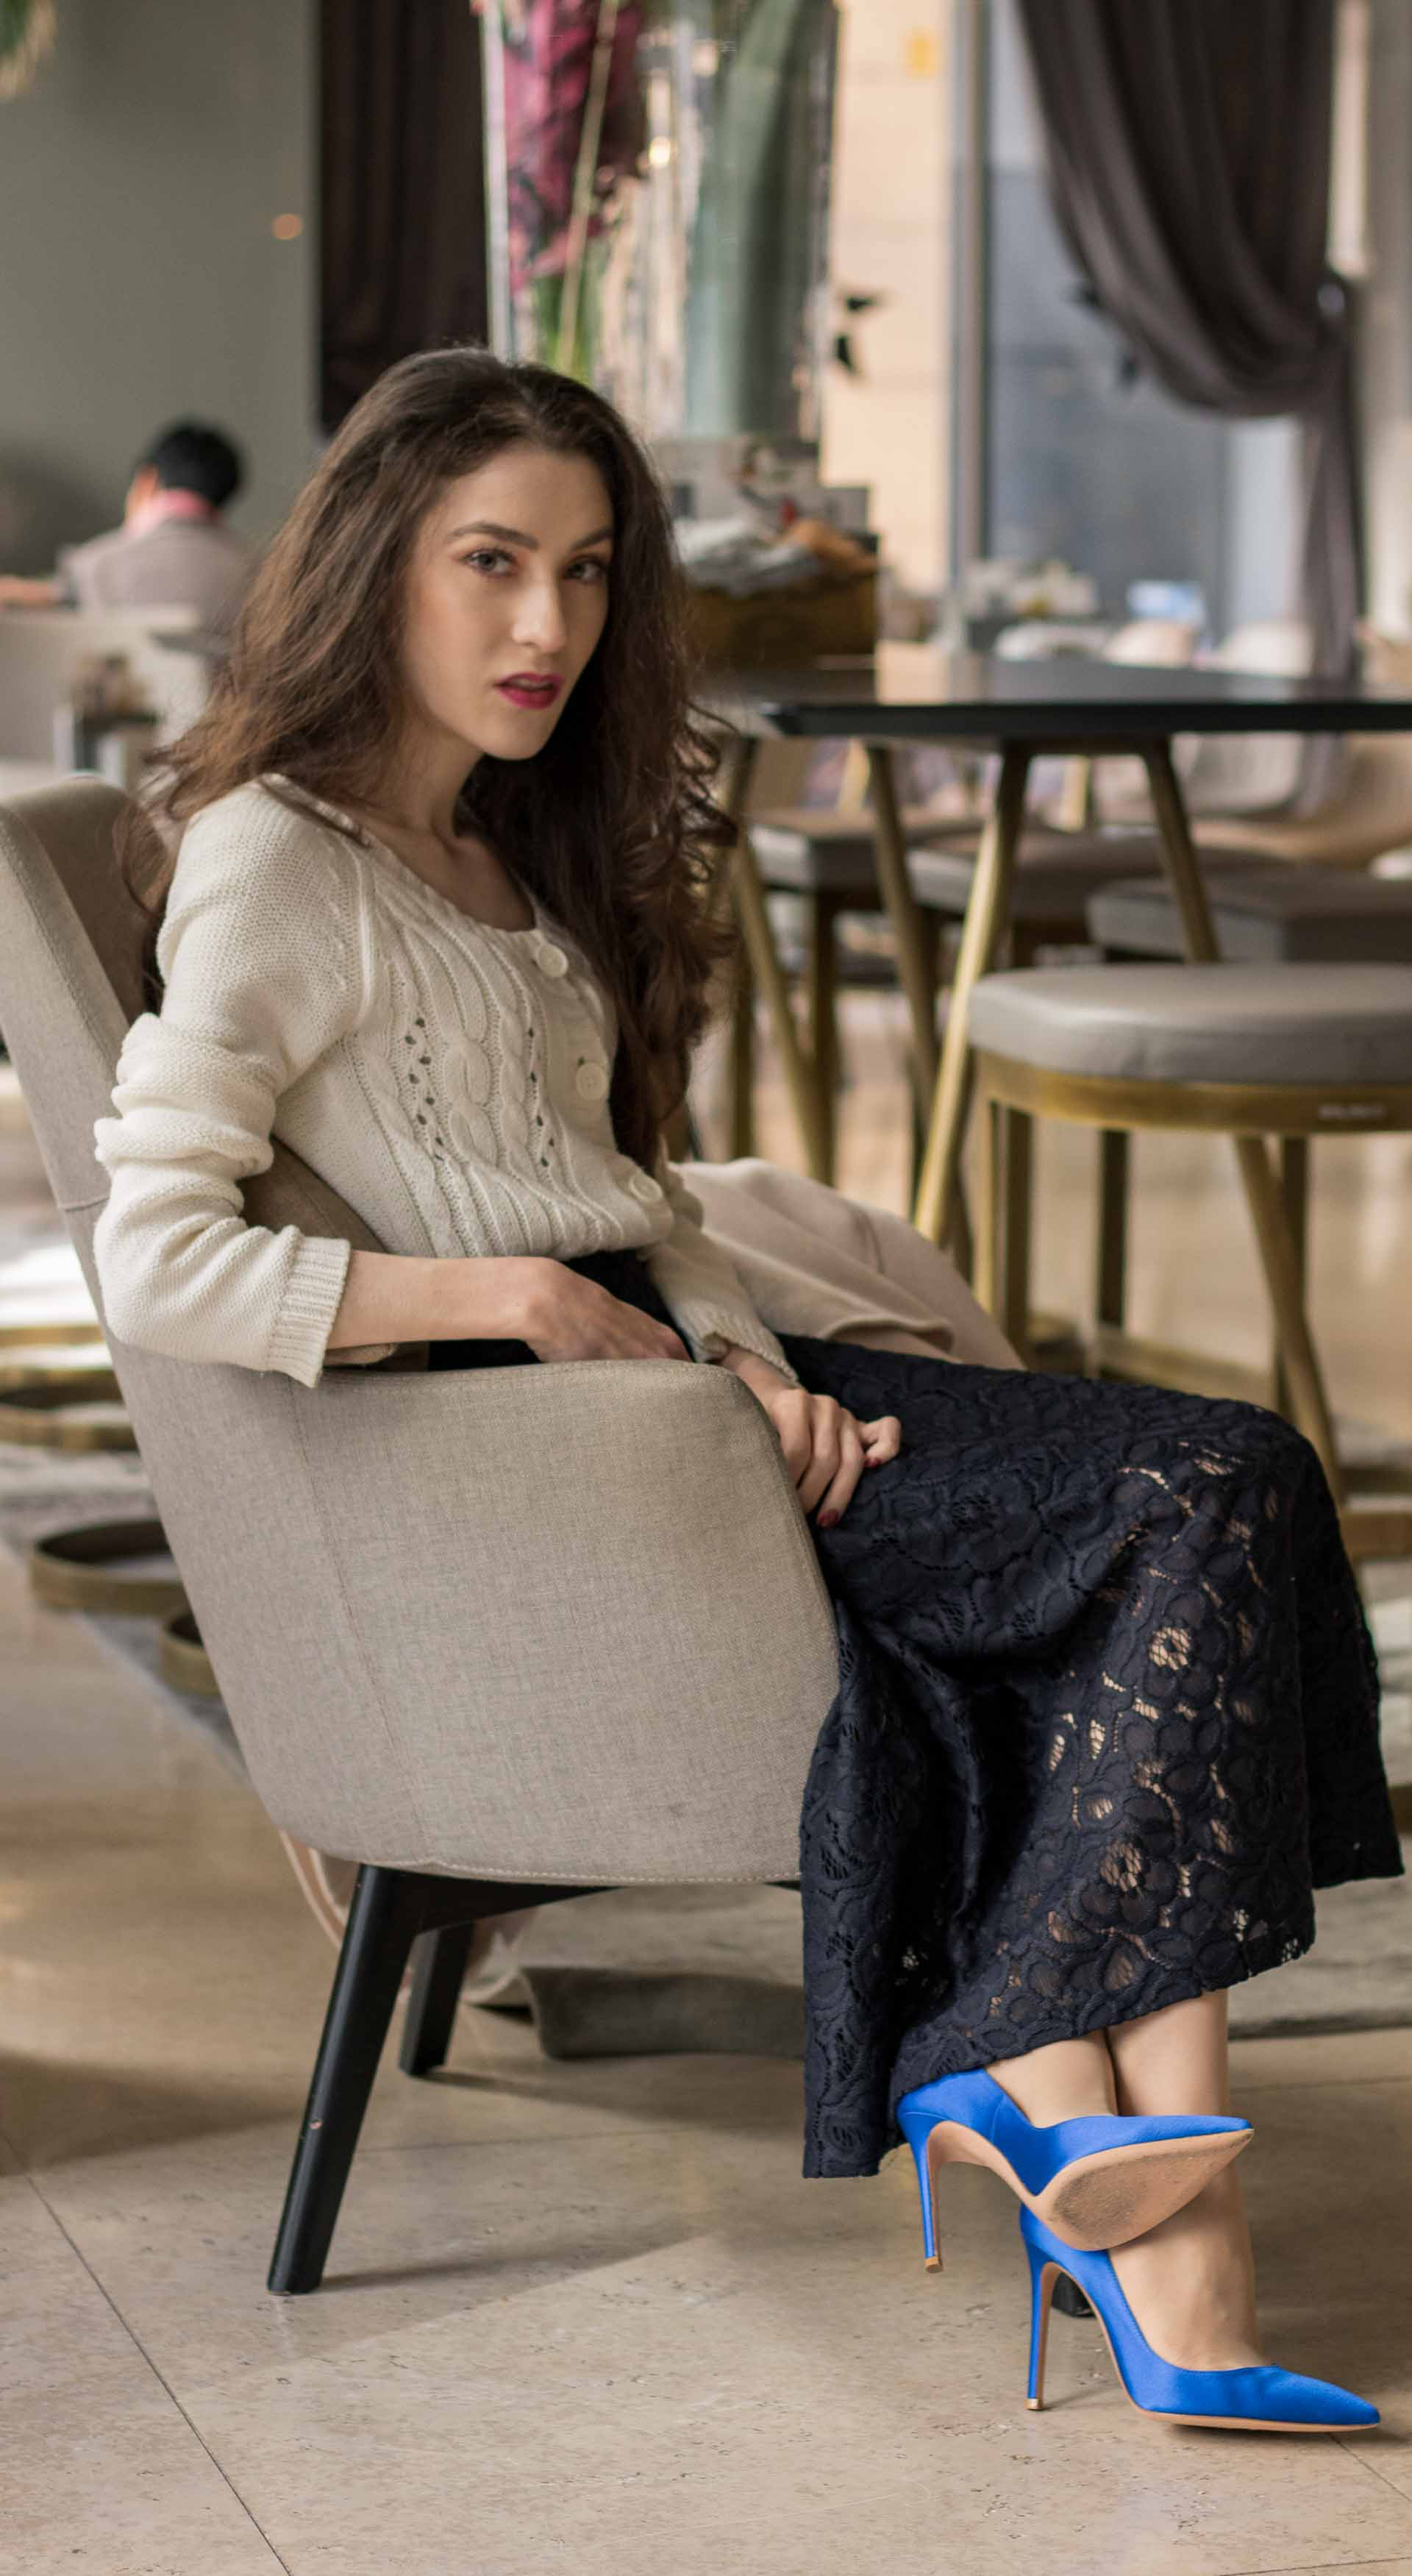 Beautiful Slovenian Fashion Blogger Veronika Lipar of Brunette from Wall wearing white Mango cardigan etude into black lace midi skirt, blue Gianvito Rossi pumps for fall Sunday brunch sitting on the armchair